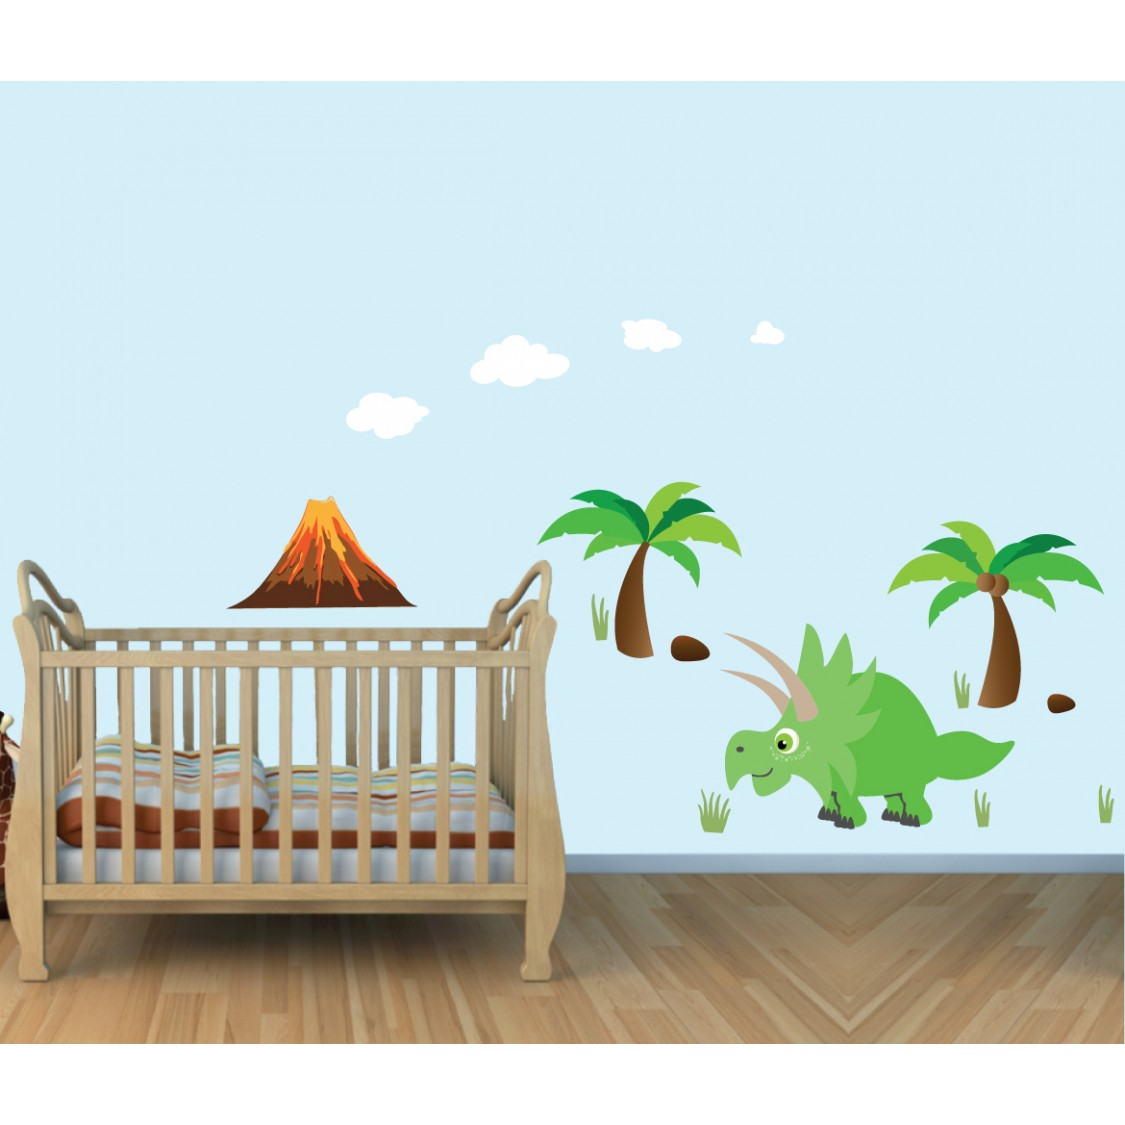 Colorful Large Wall Decor With Dinosaurs Stickers For Boys Bedrooms